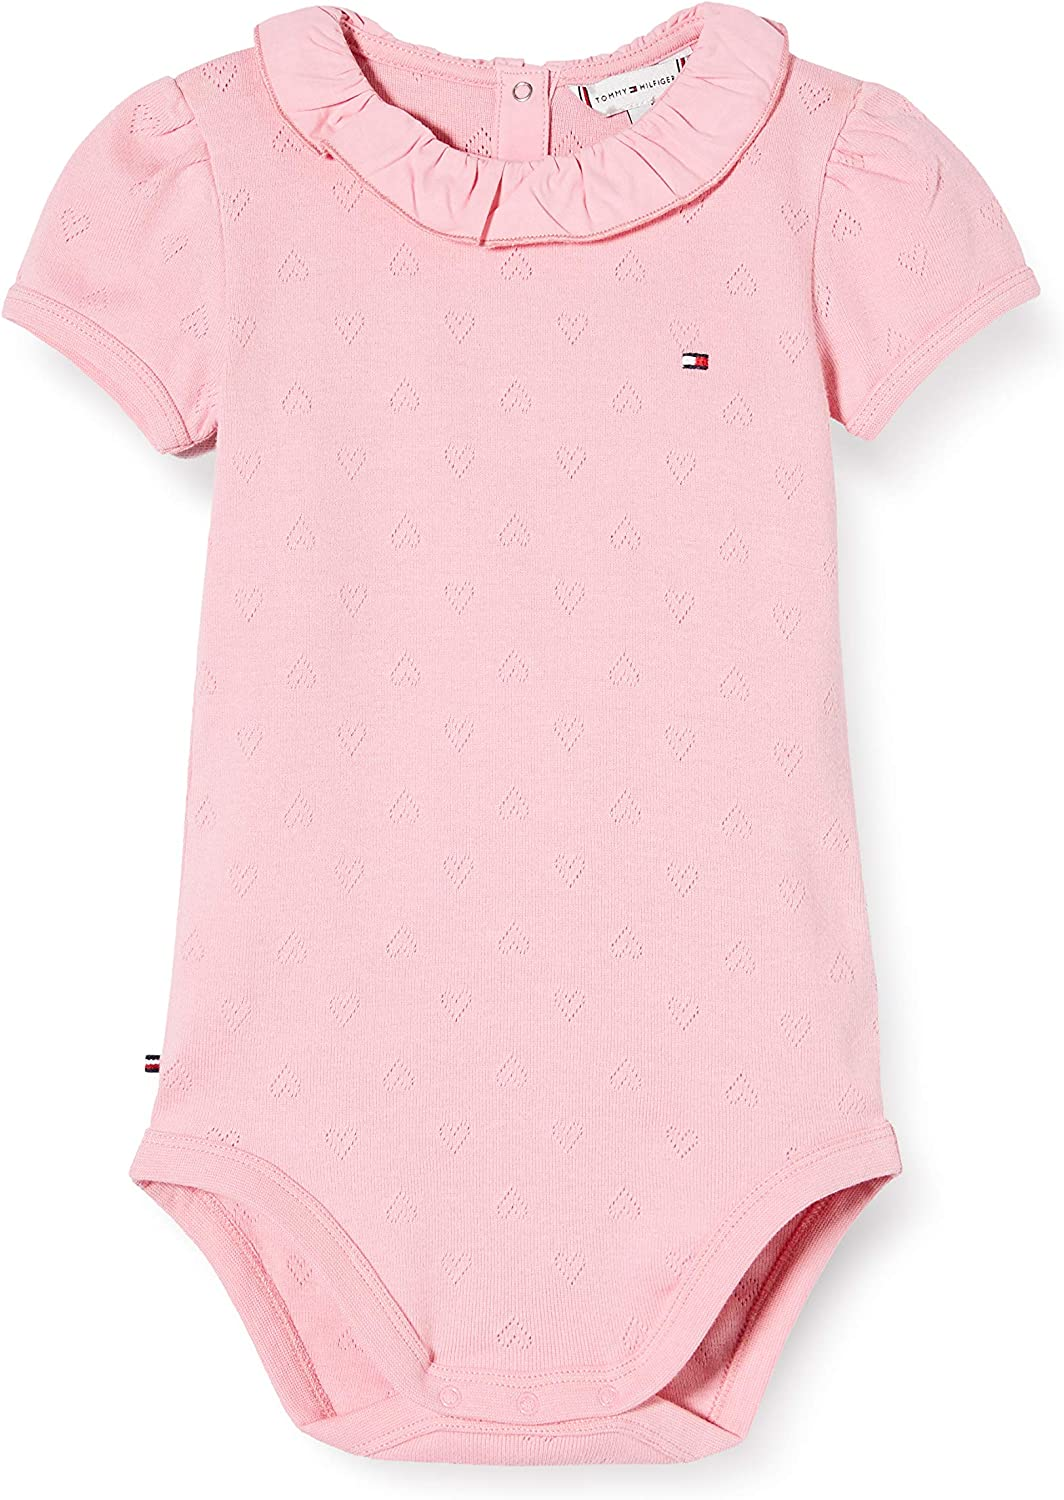 Tommy Hilfiger Baby Girl Ruffle Collar Body S/S Bebés